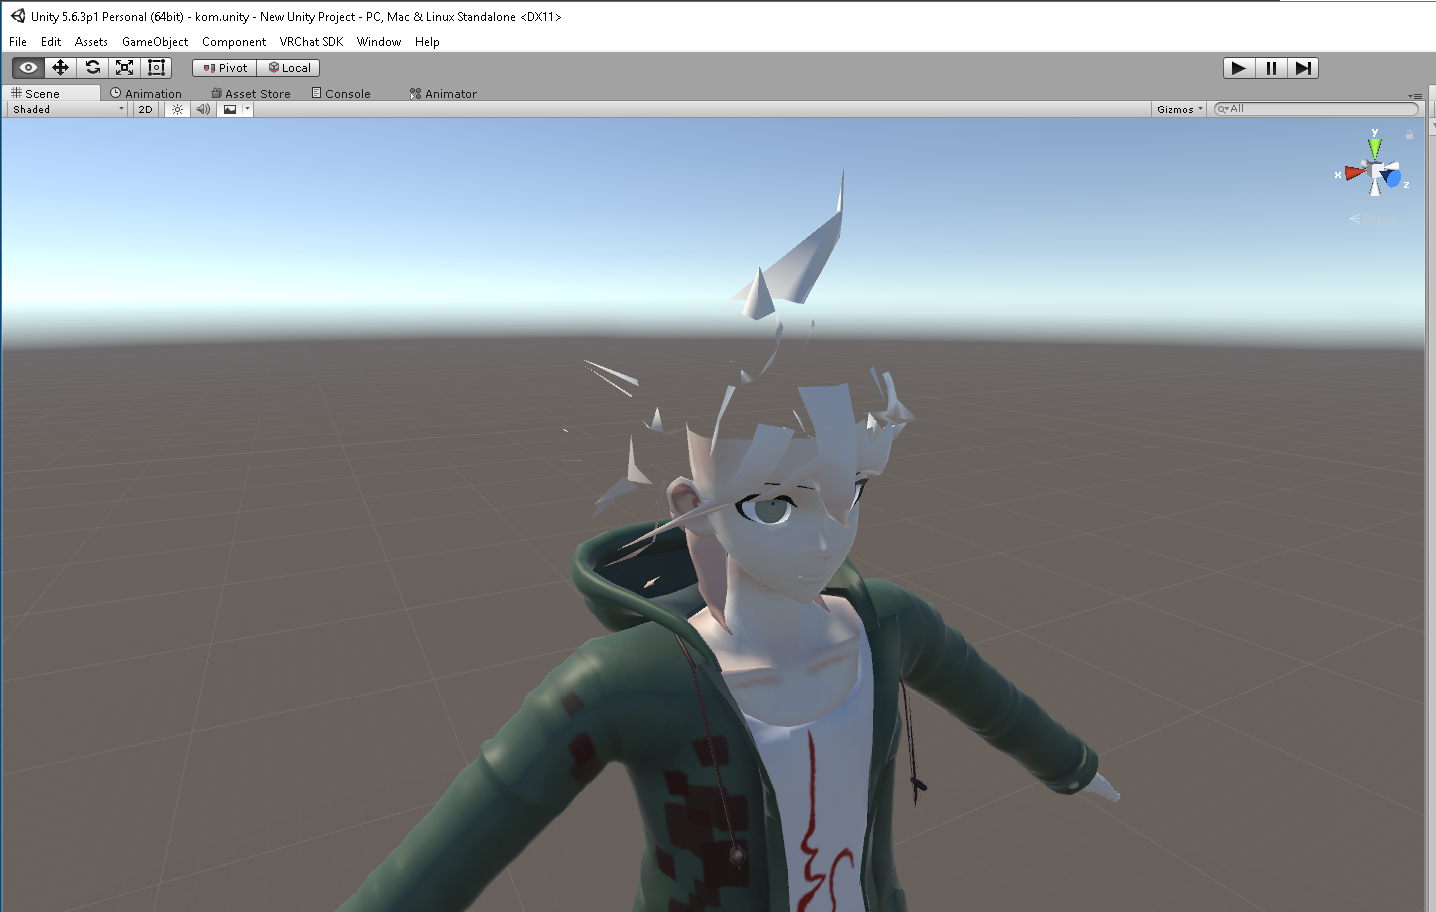 fbx model is missing faces but its okay in maya, 3ds max and